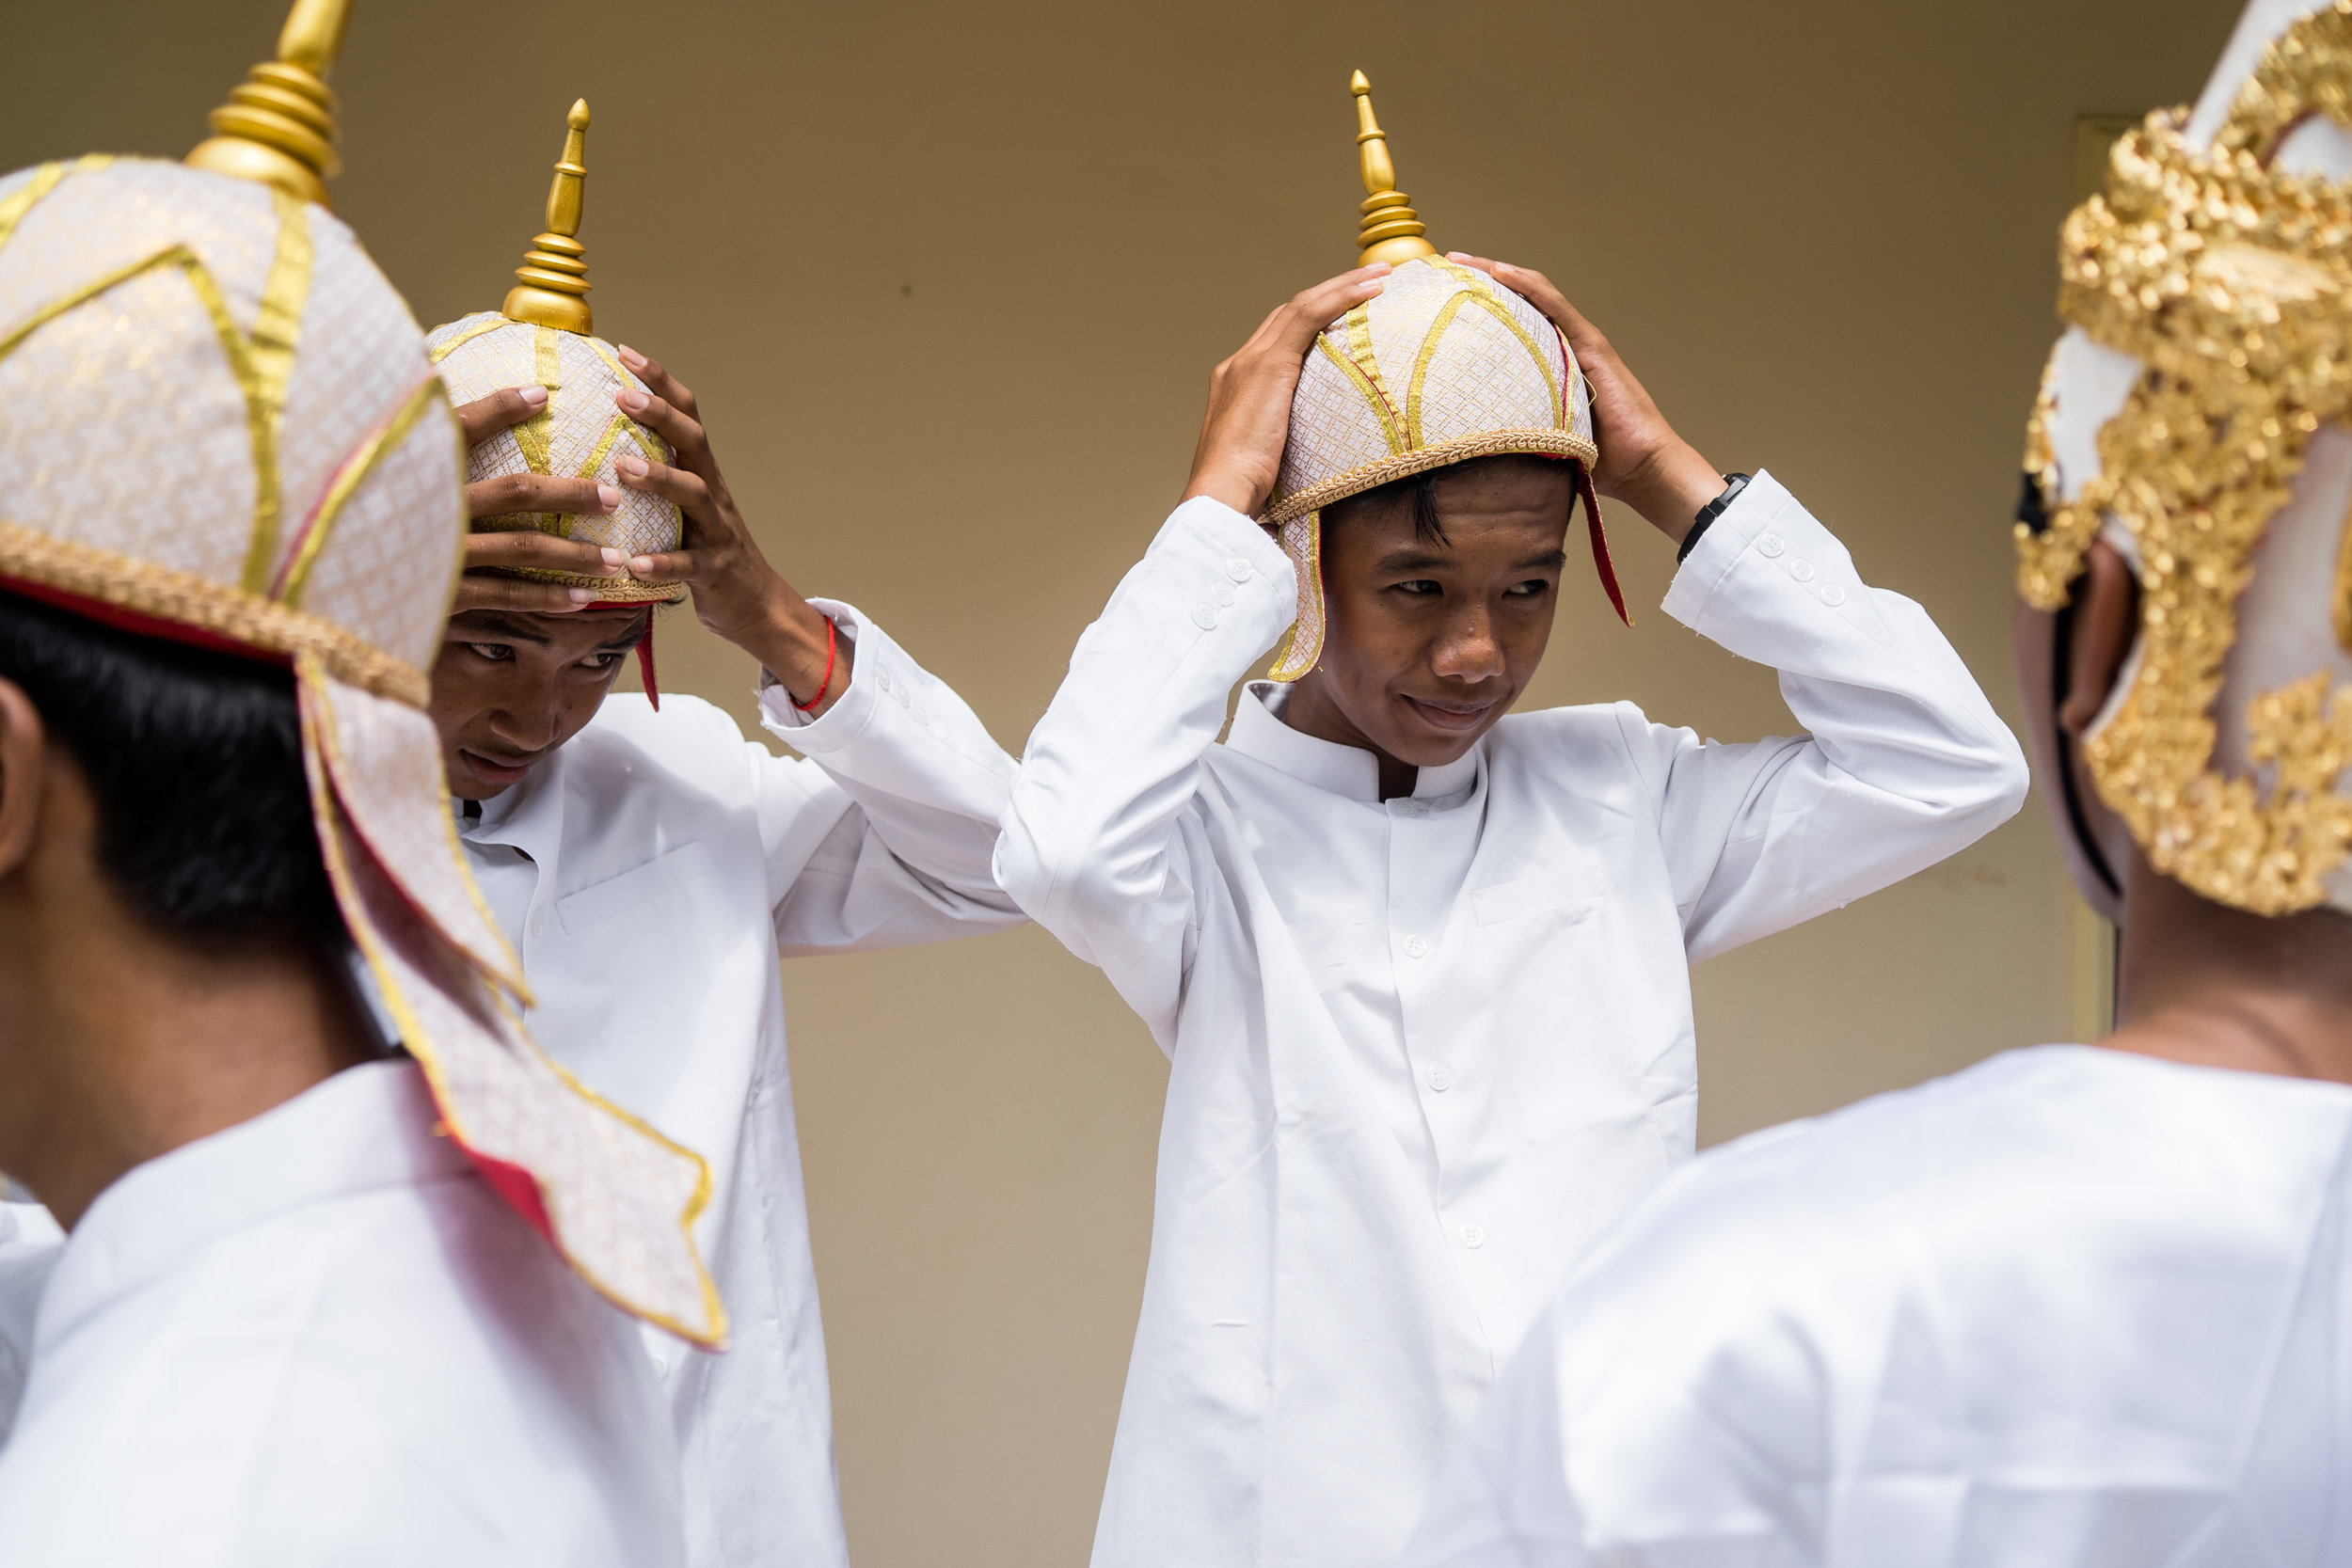 Young men adjust their headdresses in preparation for a procession on Visak Bochea Day, a Buddhist holiday that celebrates the birth, enlightenment, and death of Buddha